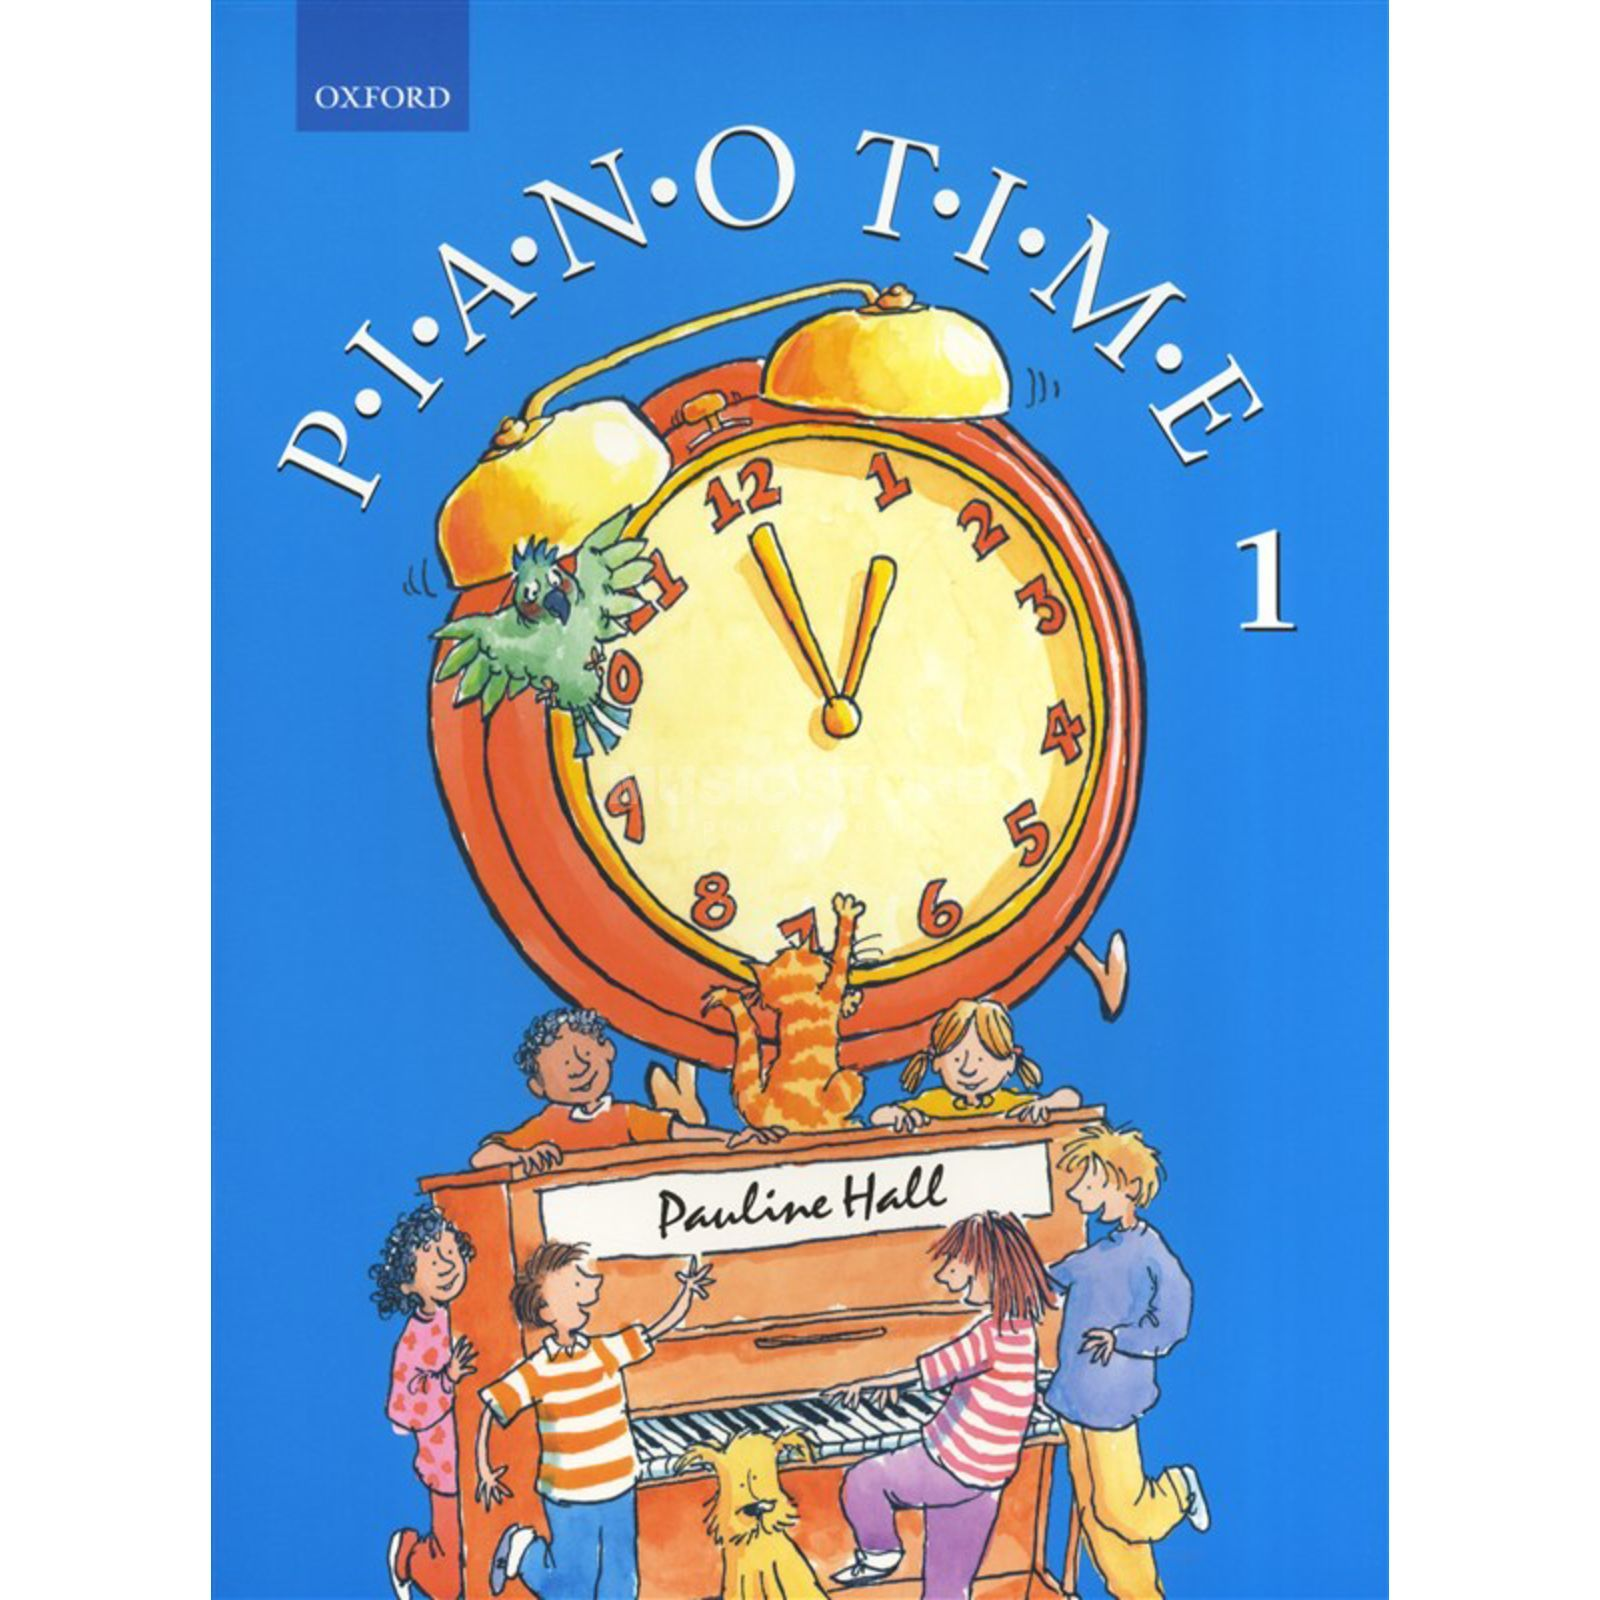 Oxford University Press Piano Time 1 Pauline Hall Produktbild